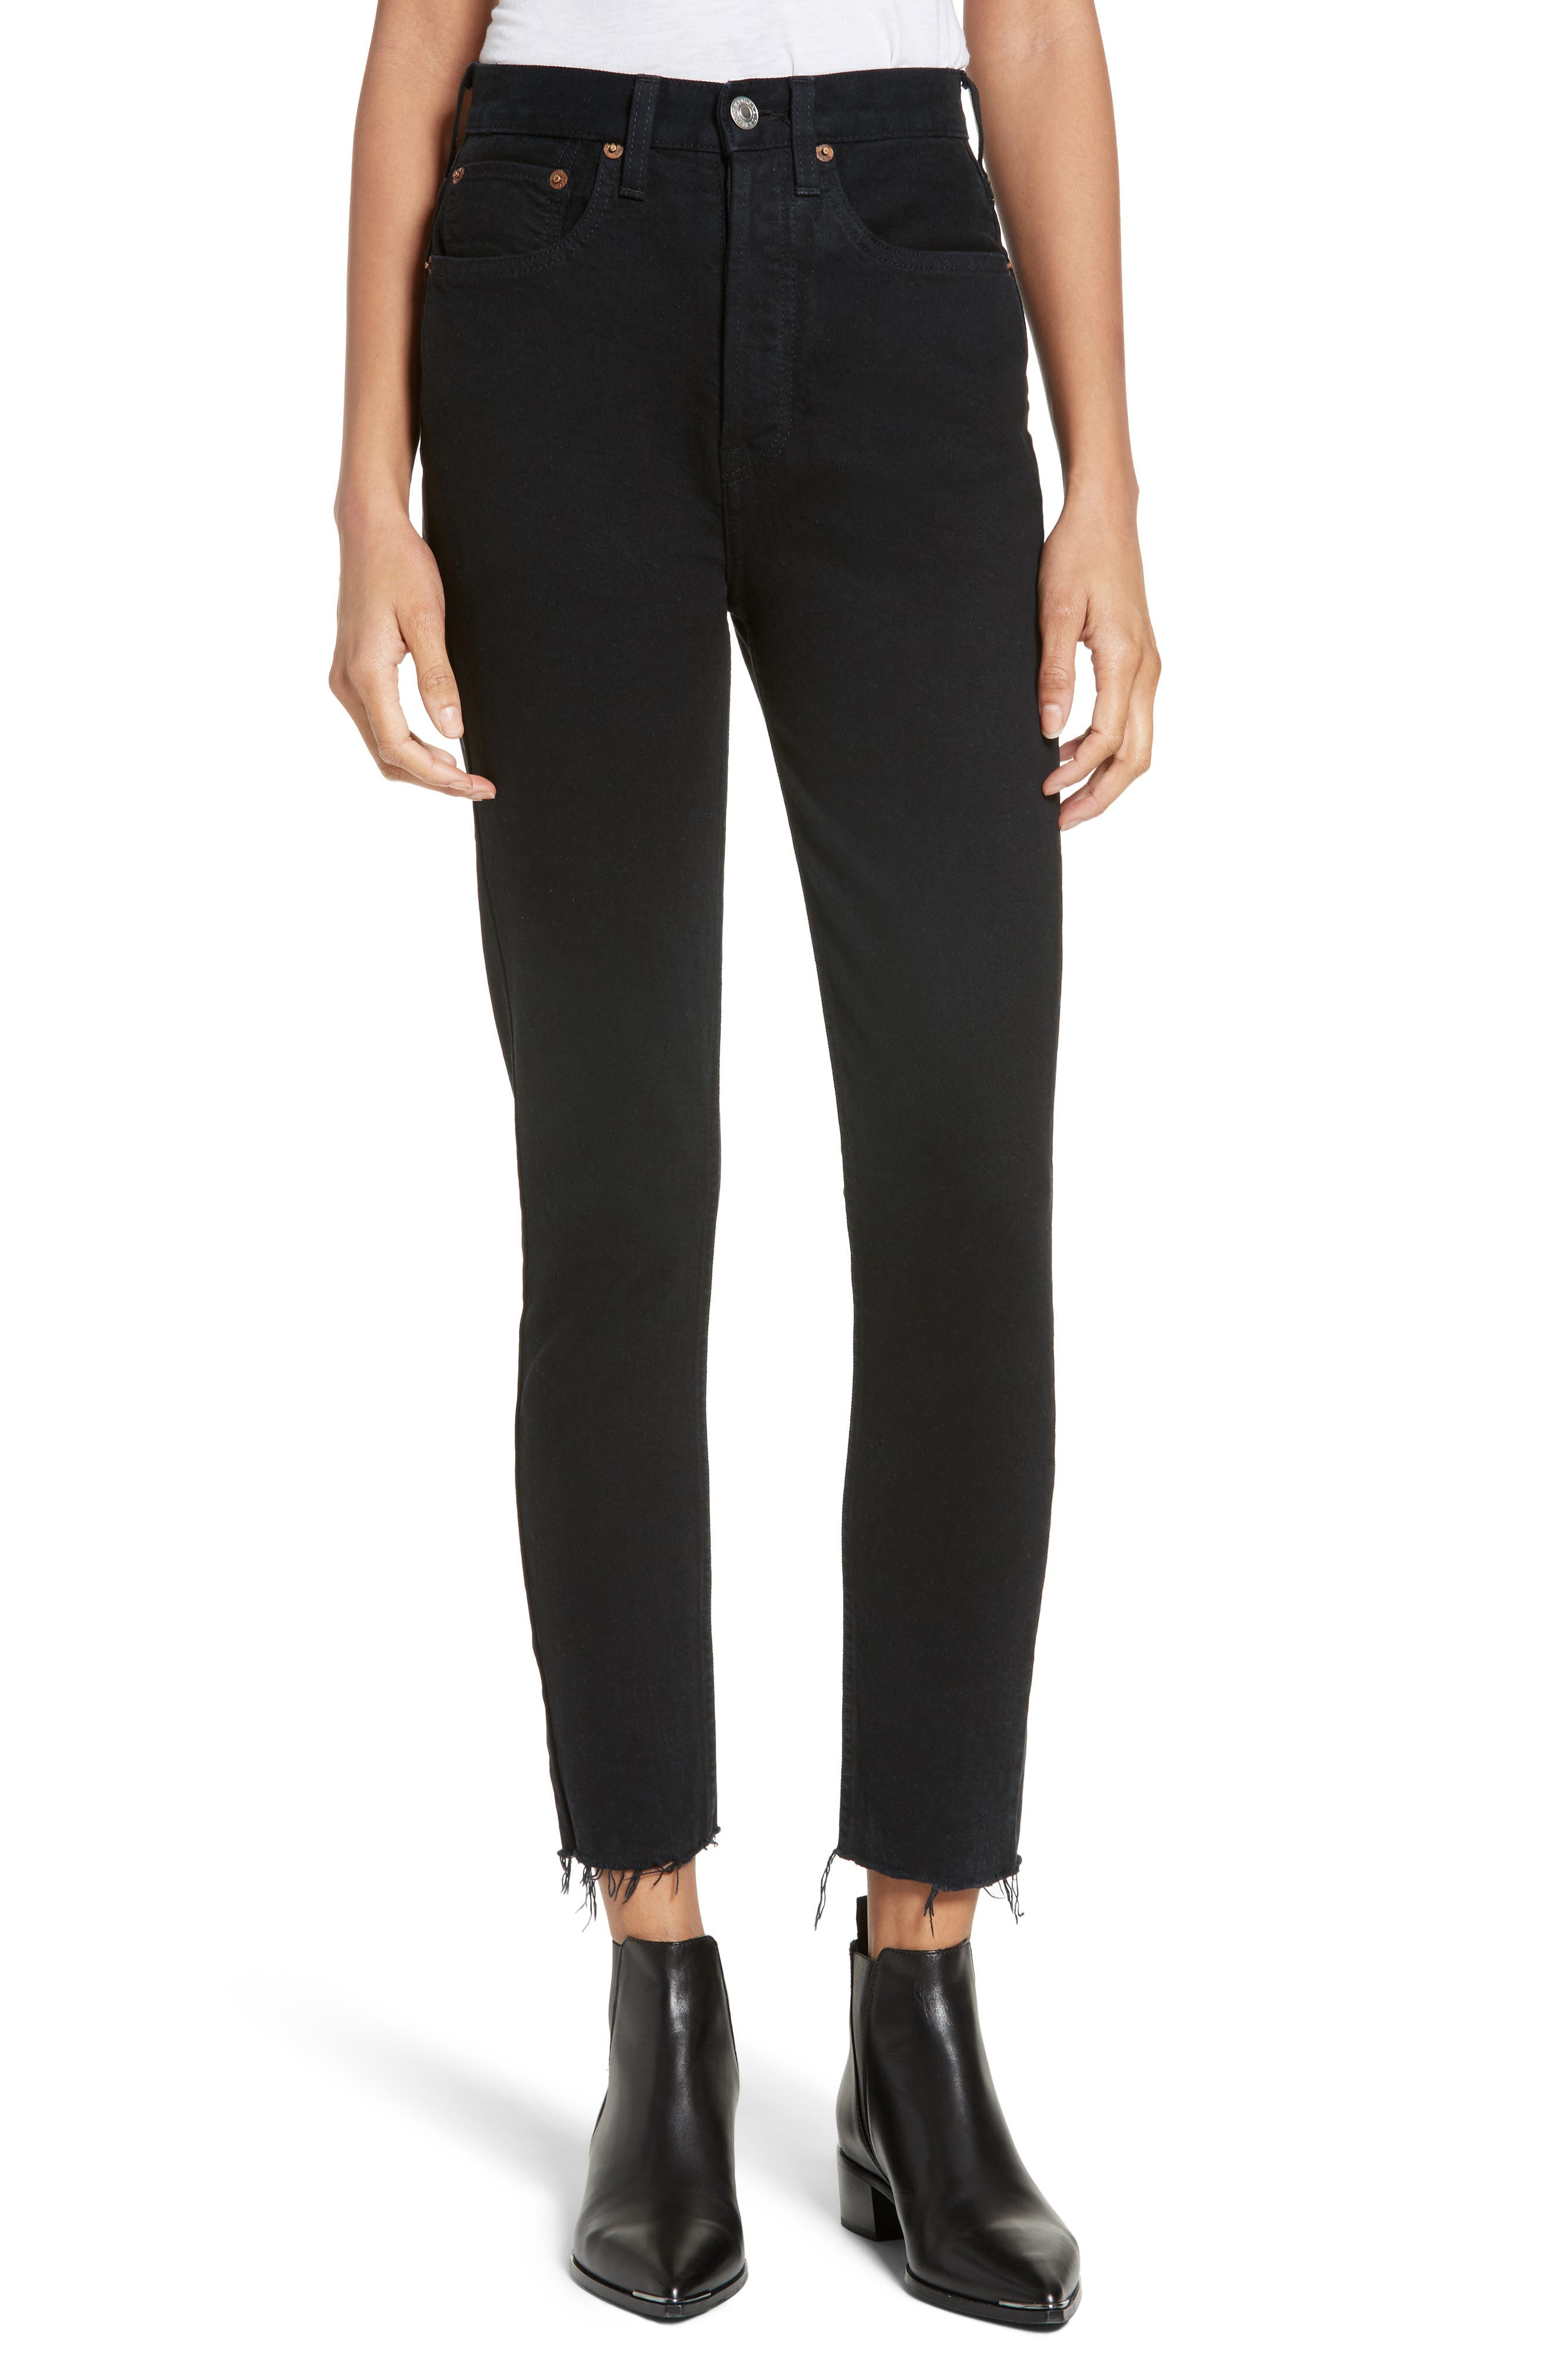 Alternate Image 1 Selected - Re/Done High Waist Crop Jeans